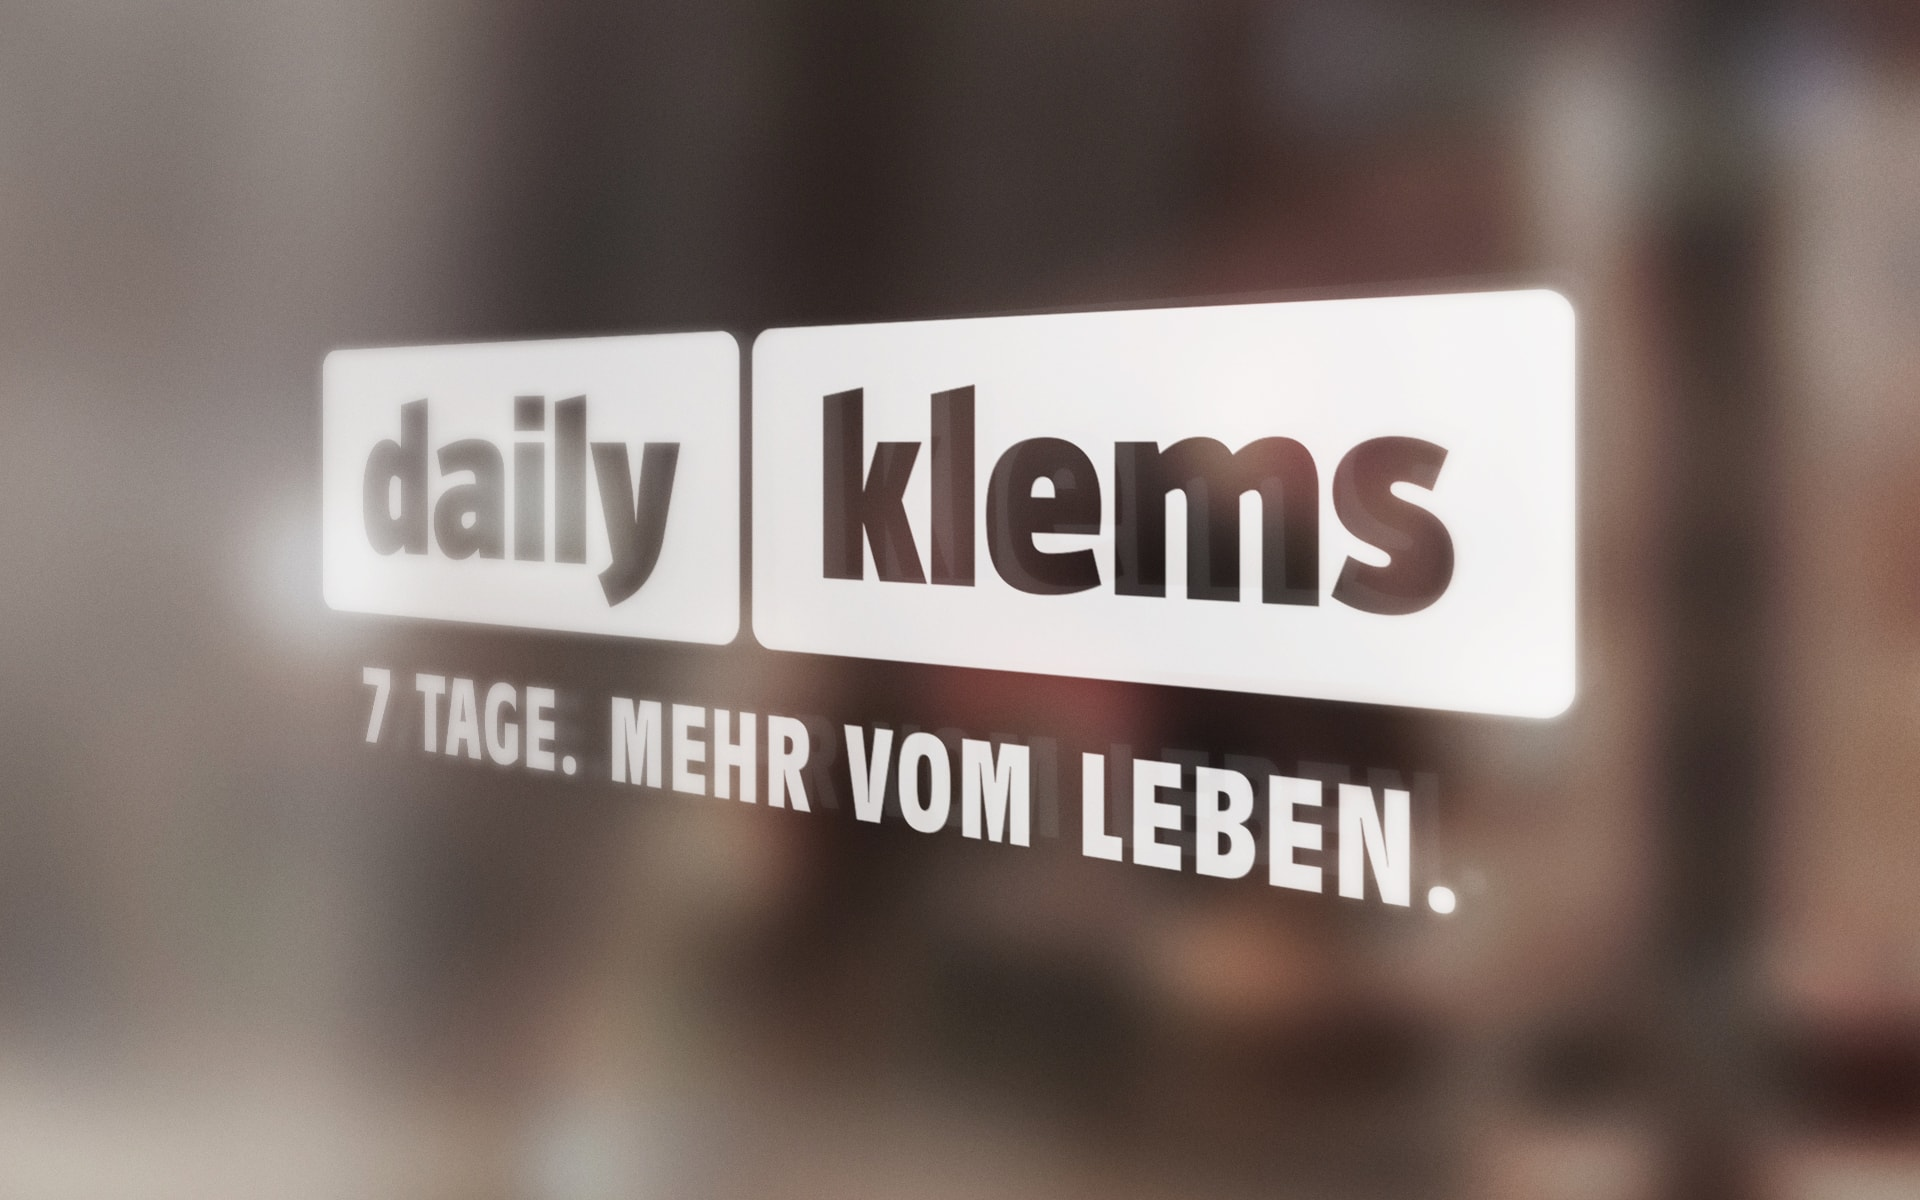 Daily-Klems Schaufensterbeklebung